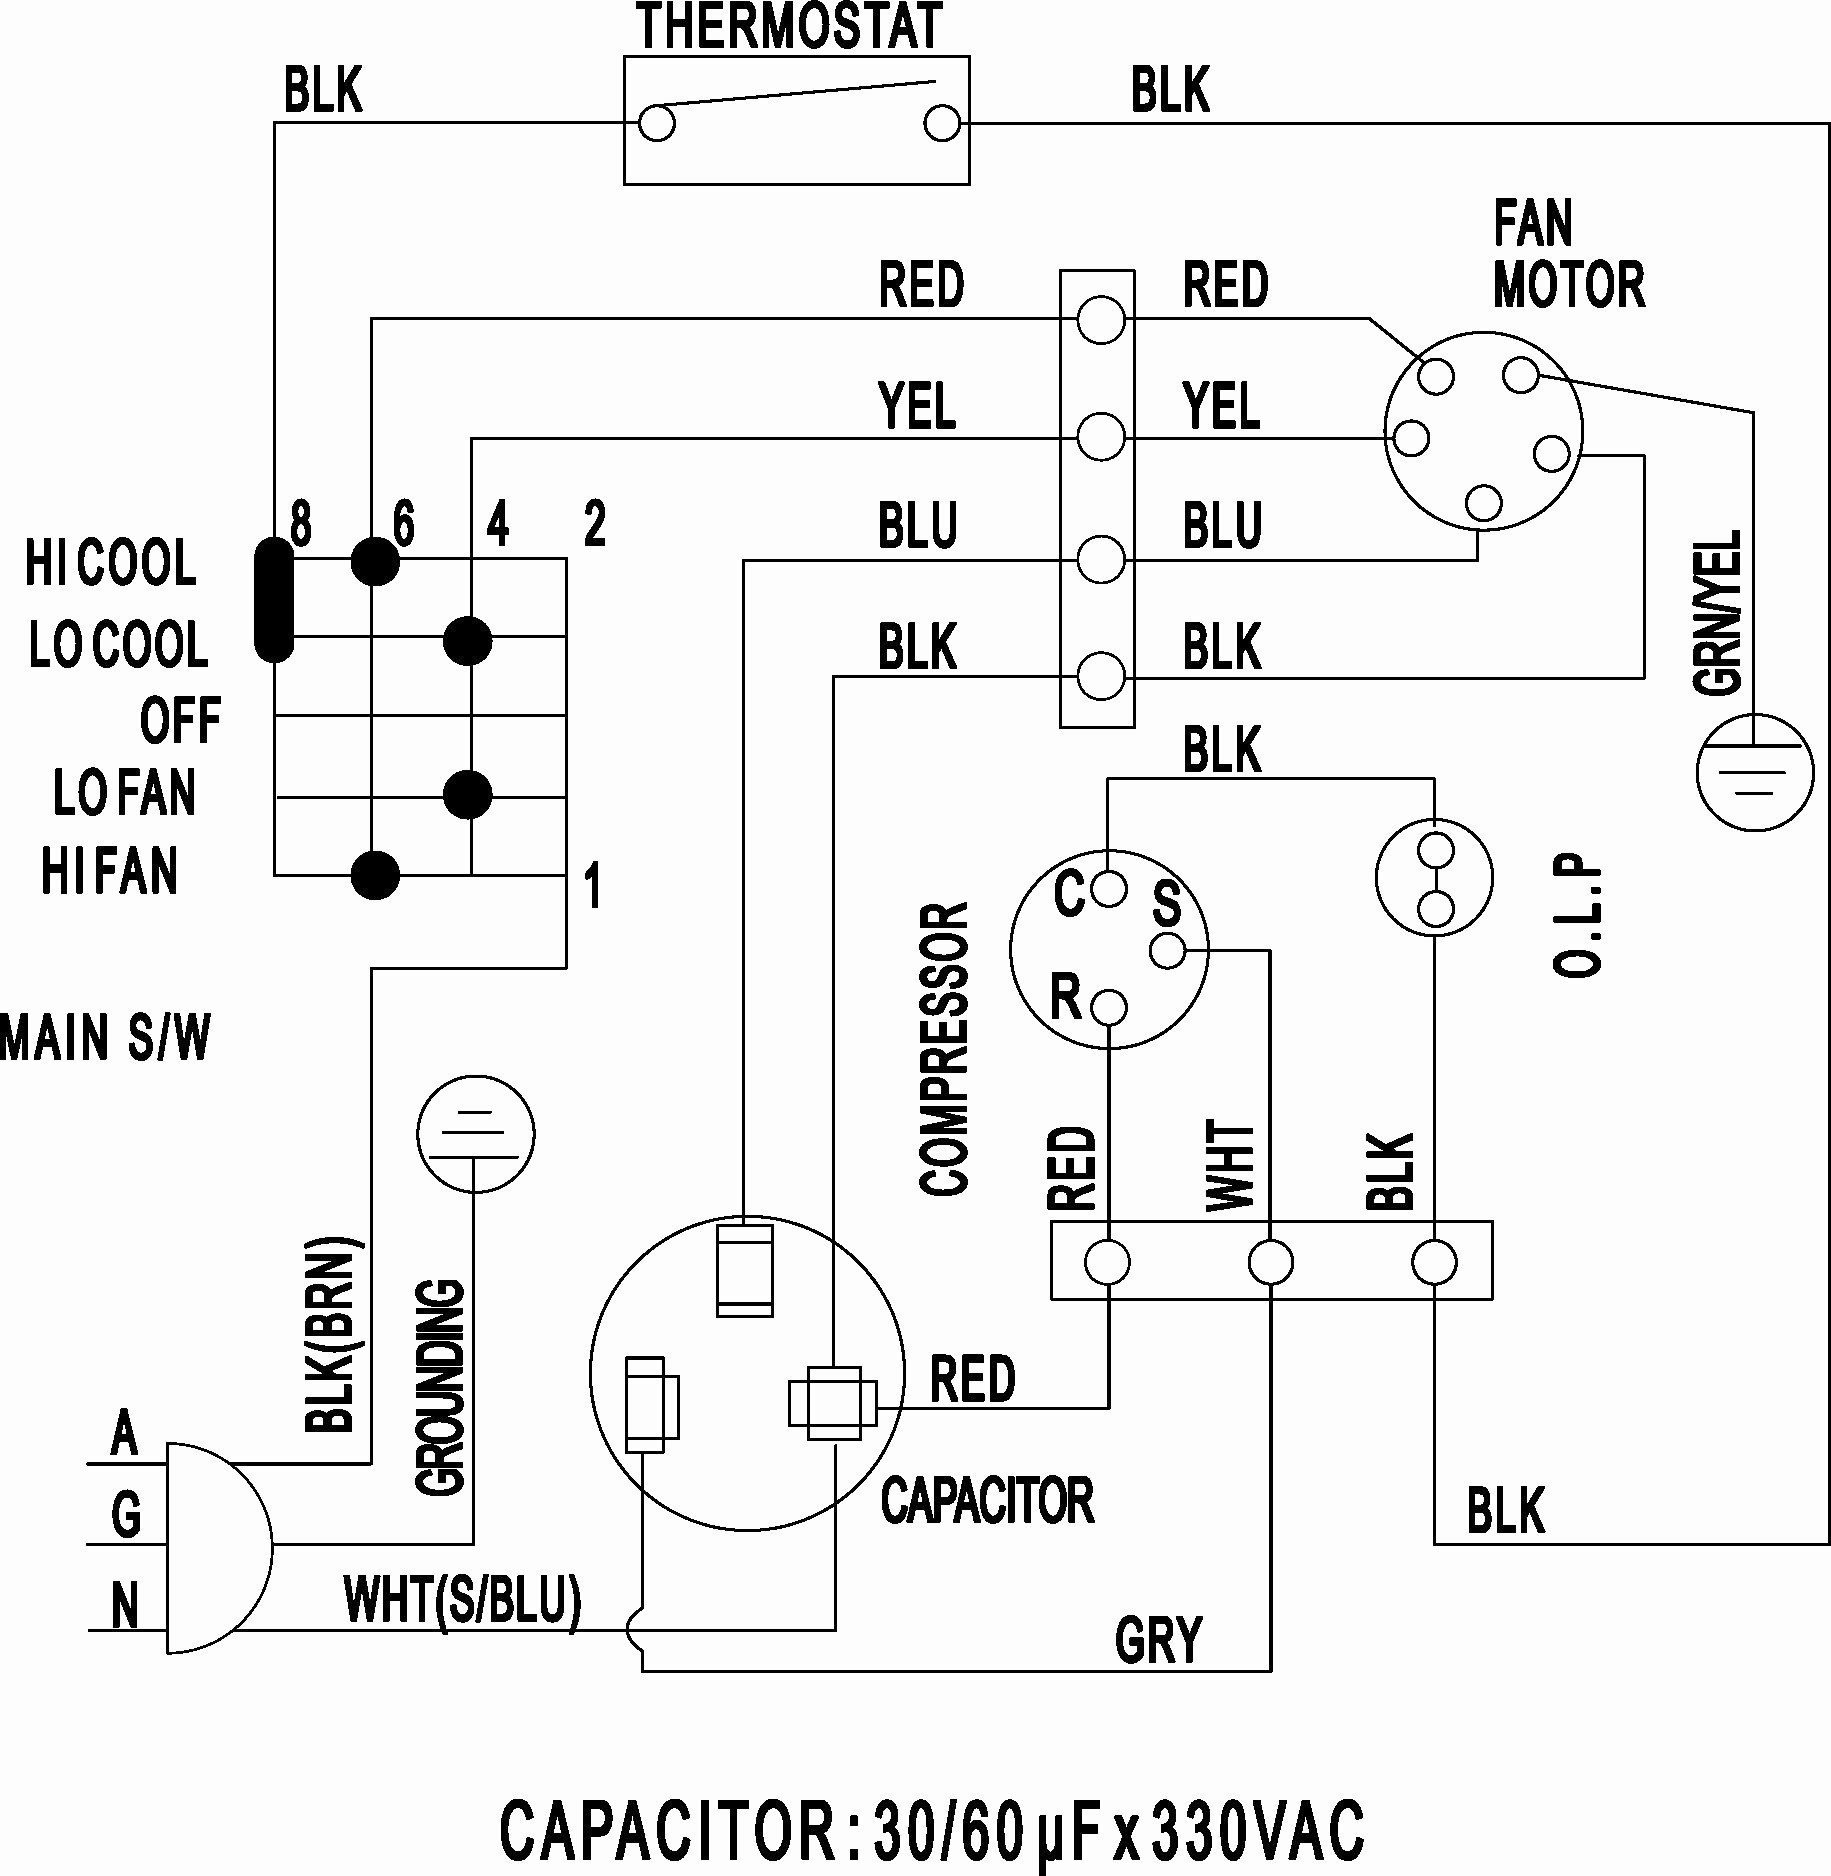 split air conditioner wiring diagram sample wiring diagram for goodman ac unit outside electrical wiring diagram for split ac